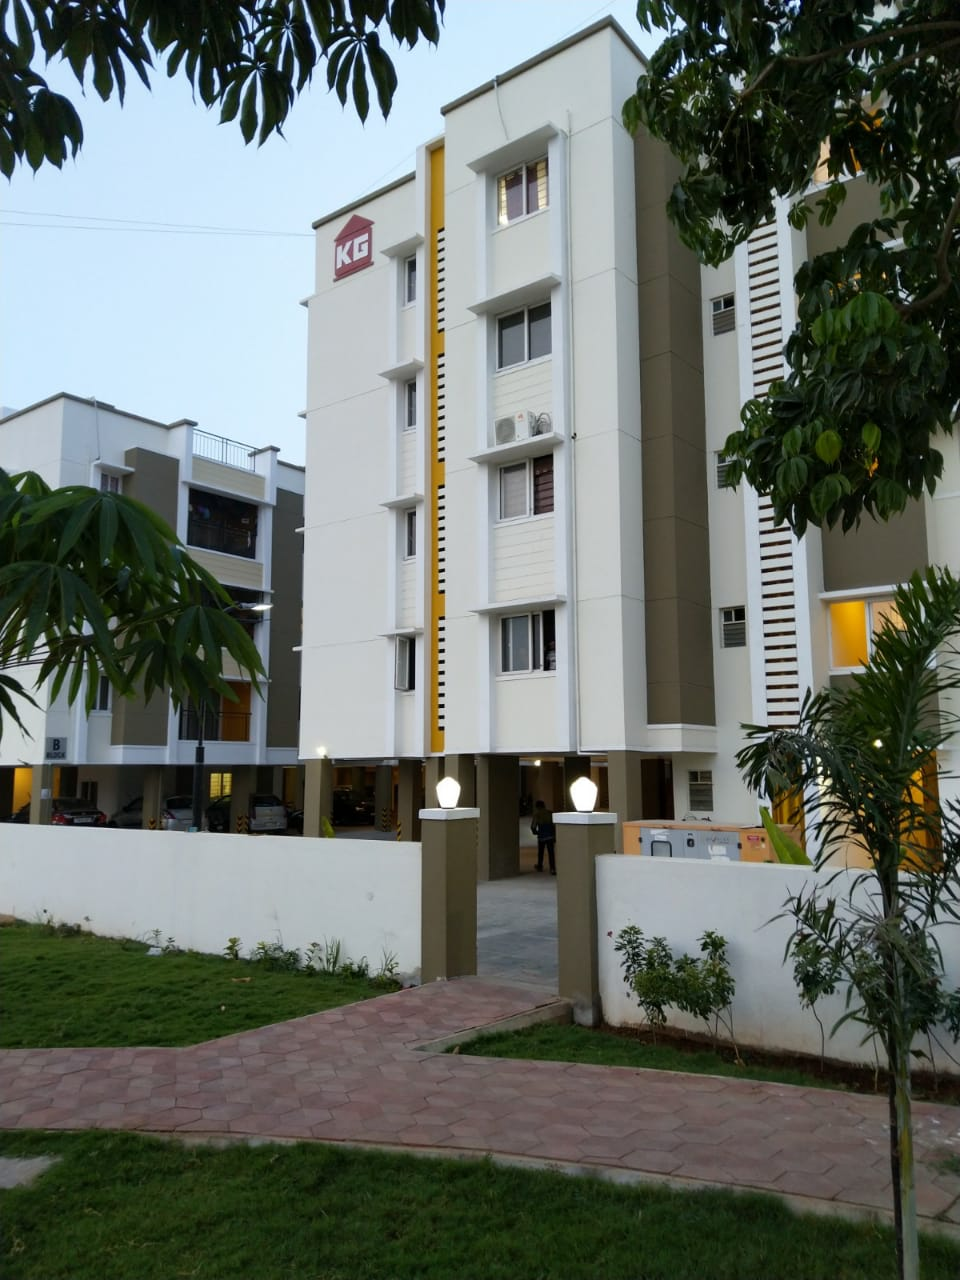 flats for sale in perumbakkam - KG Builders